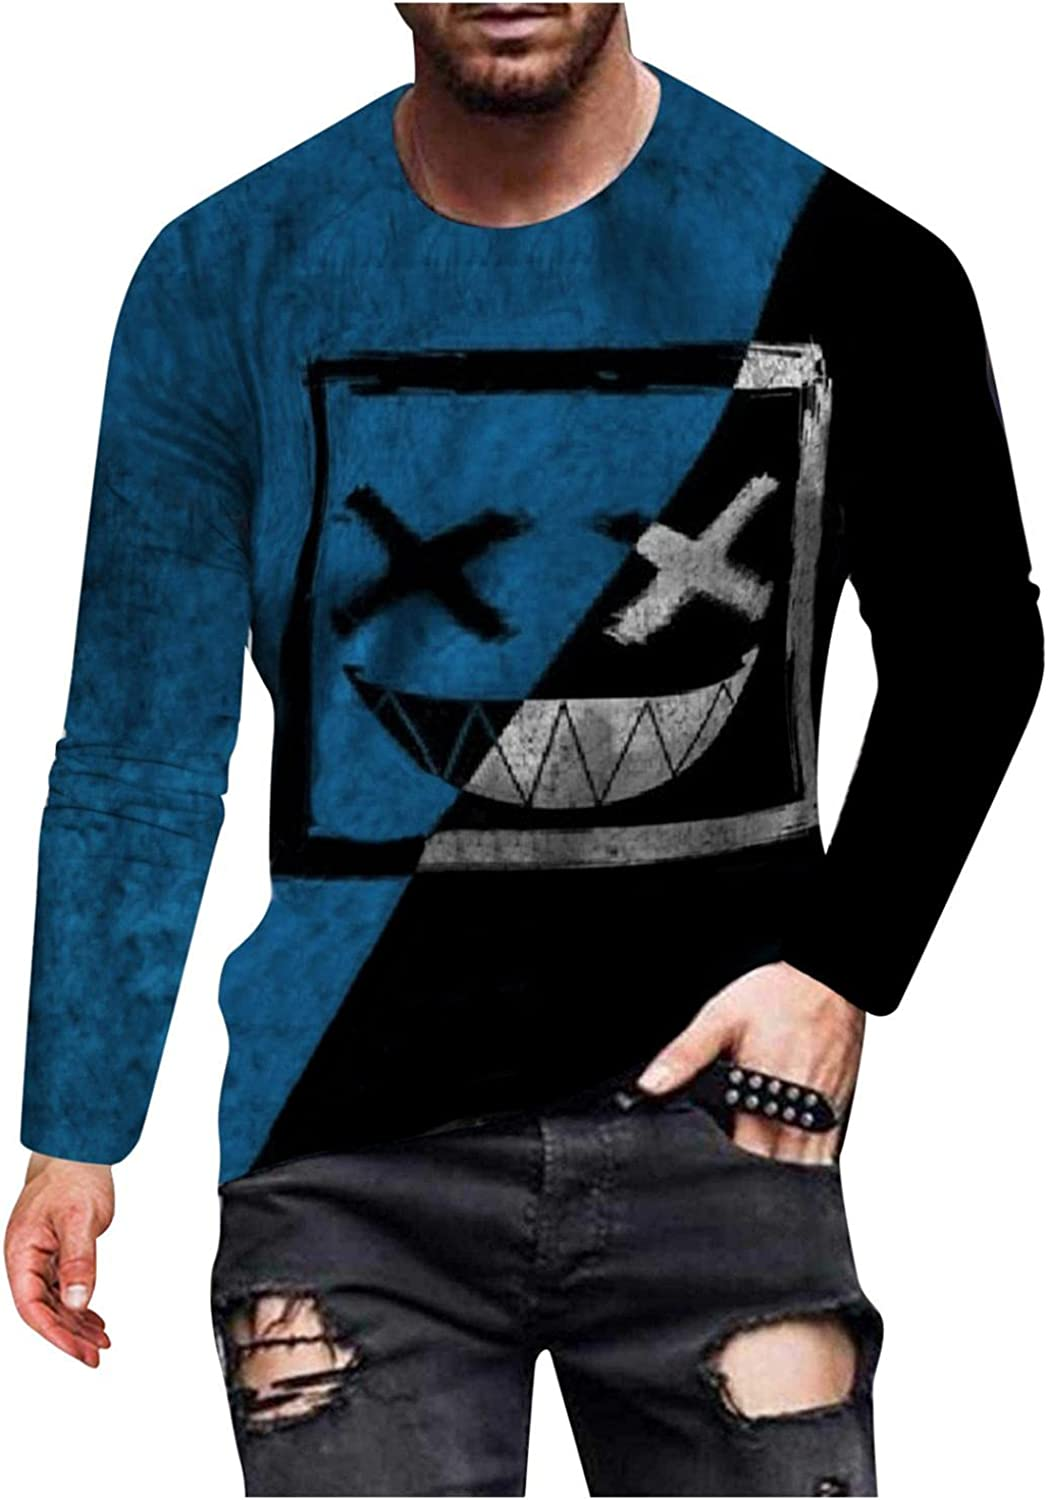 Men's Long Sleeve T Shirts Casual Lightweight Tops Round Neck Muscle Shirts Graphic Vintage 3D Digital Printing Tee